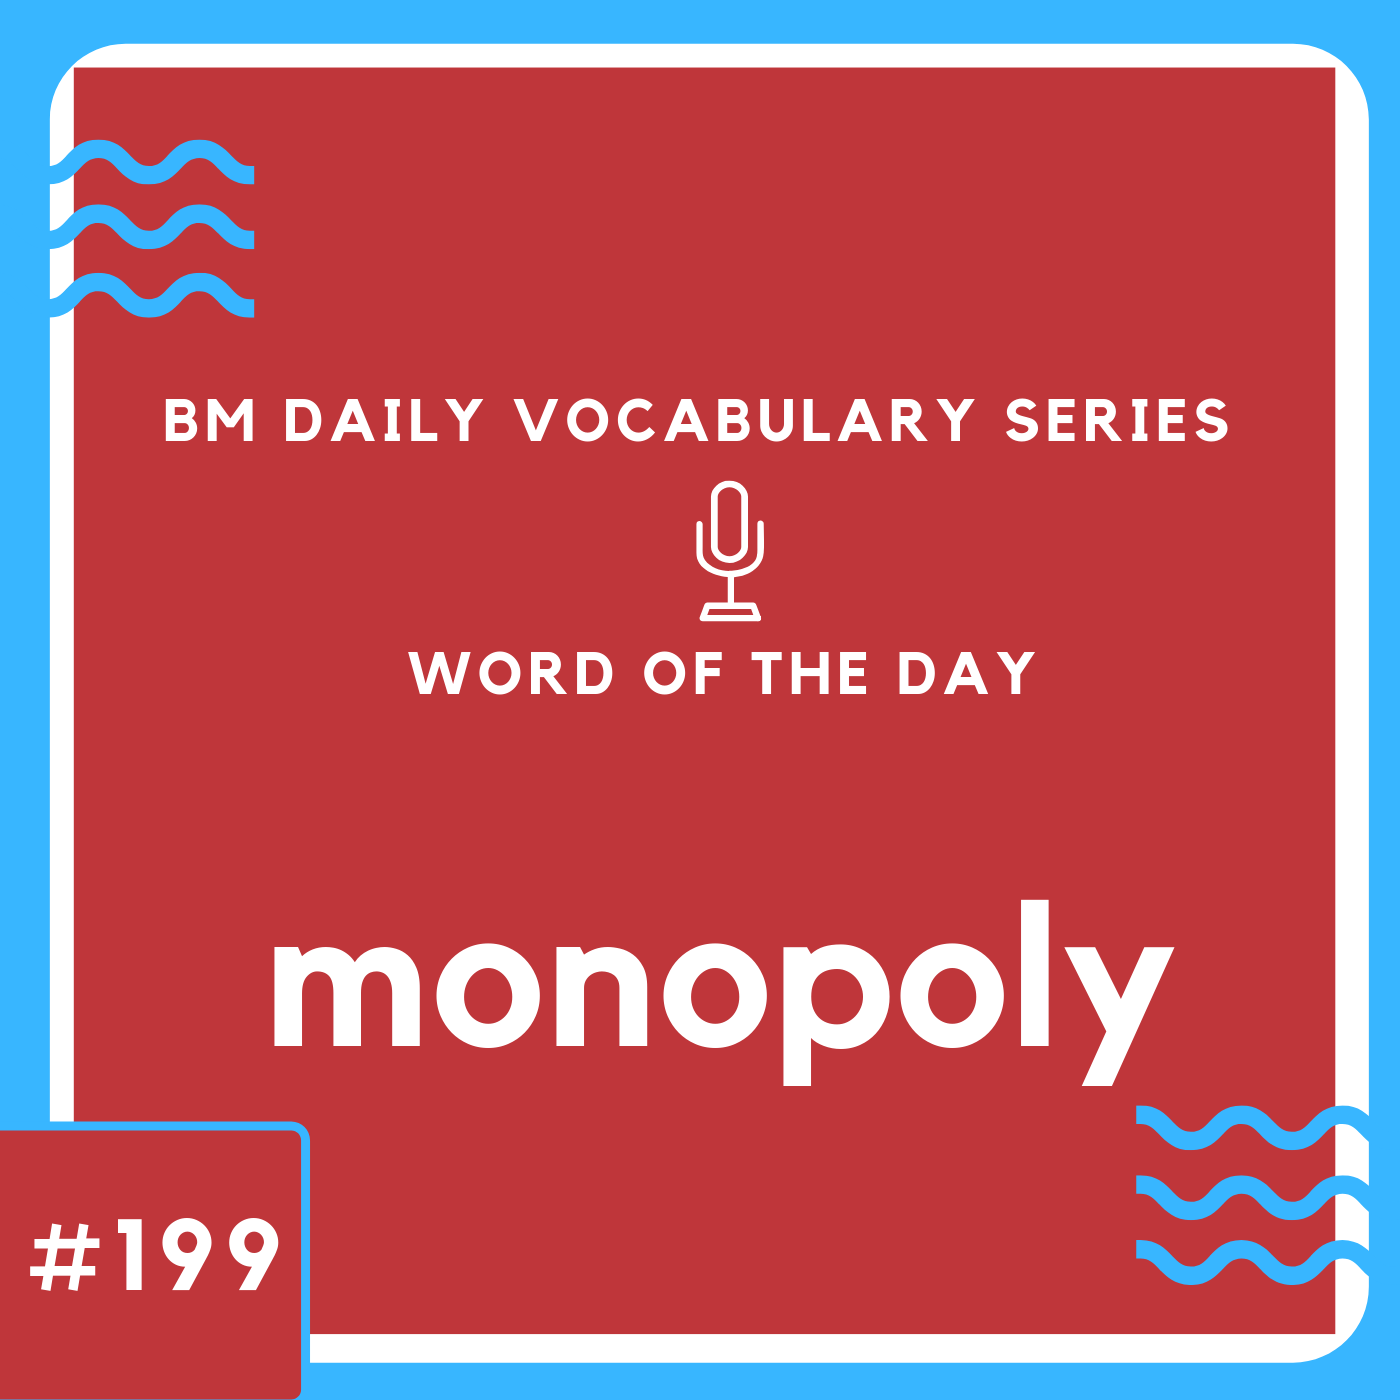 200 BM Daily Vocabulary #199 | monopoly